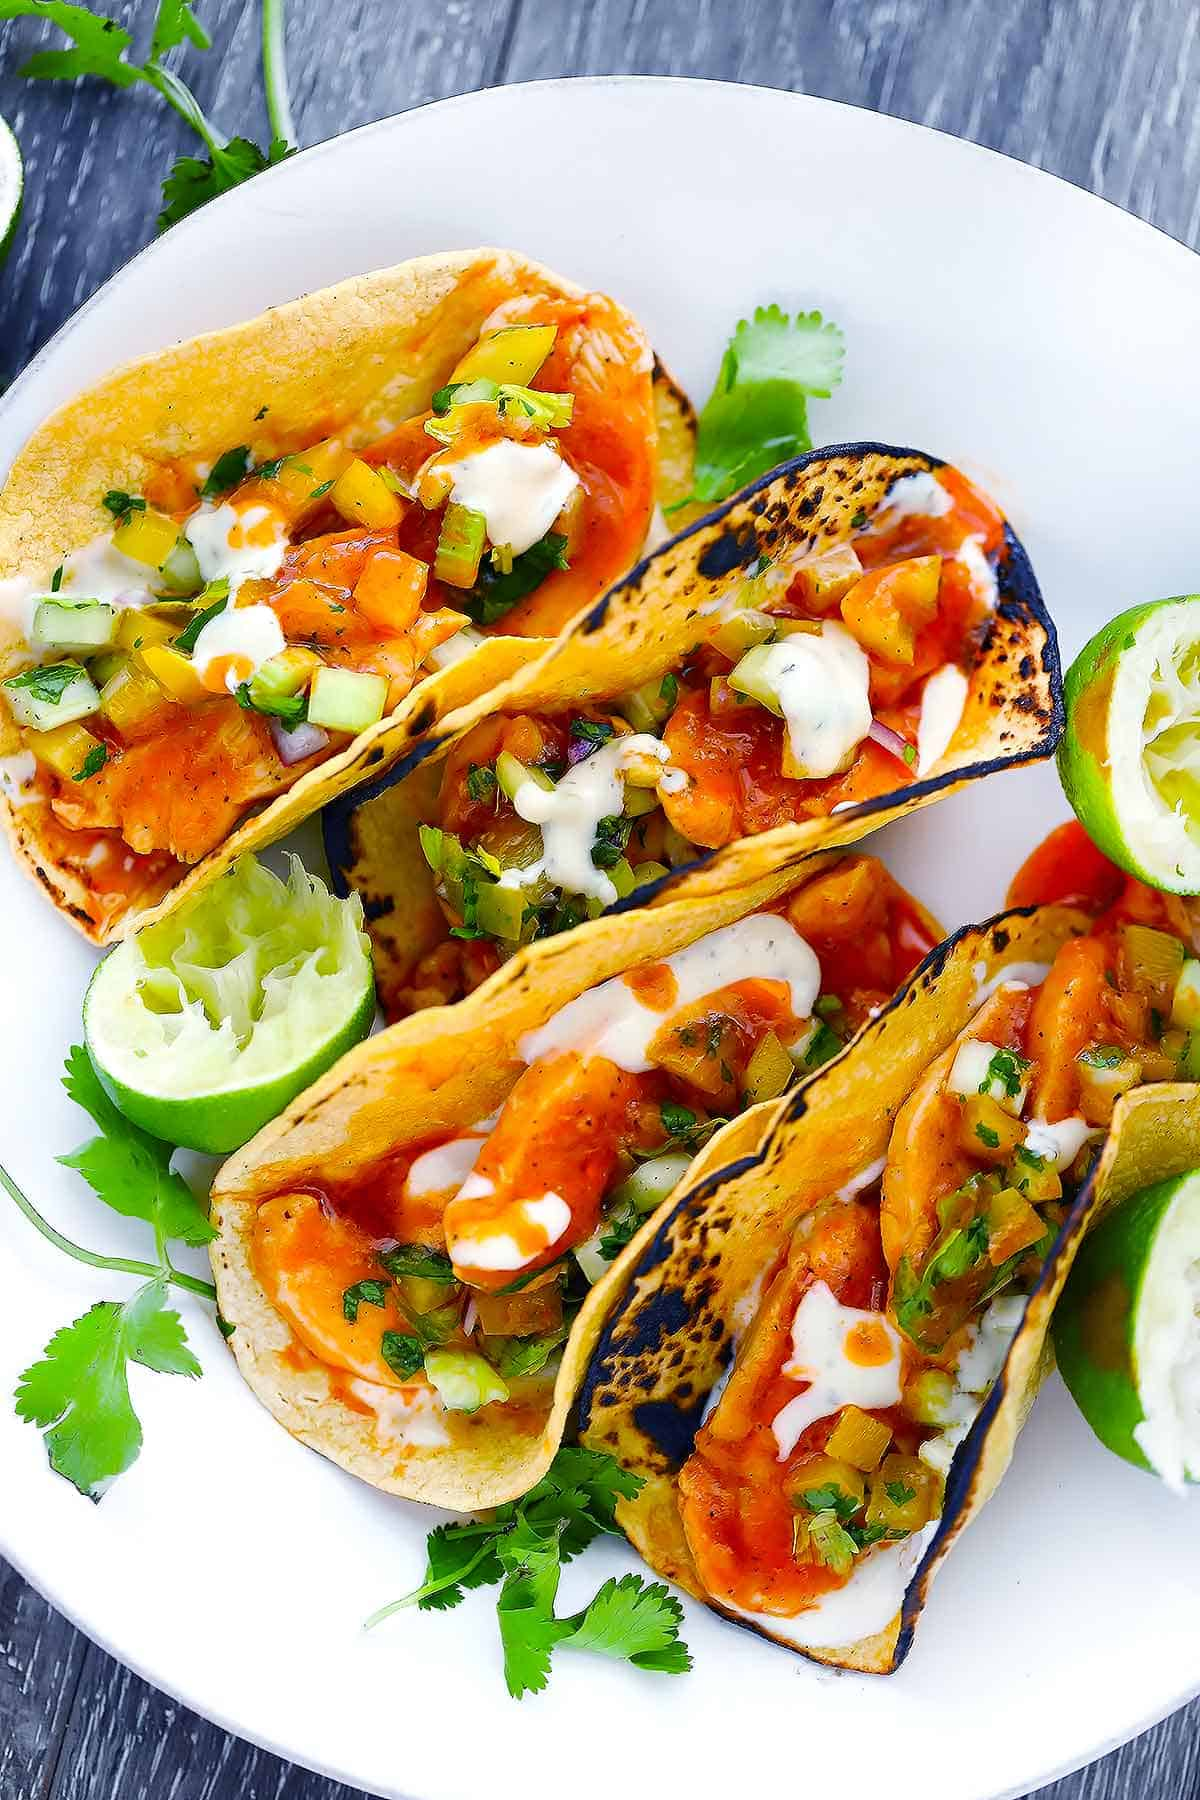 Four buffalo chicken tacos on a white plate with limes and cilantro.